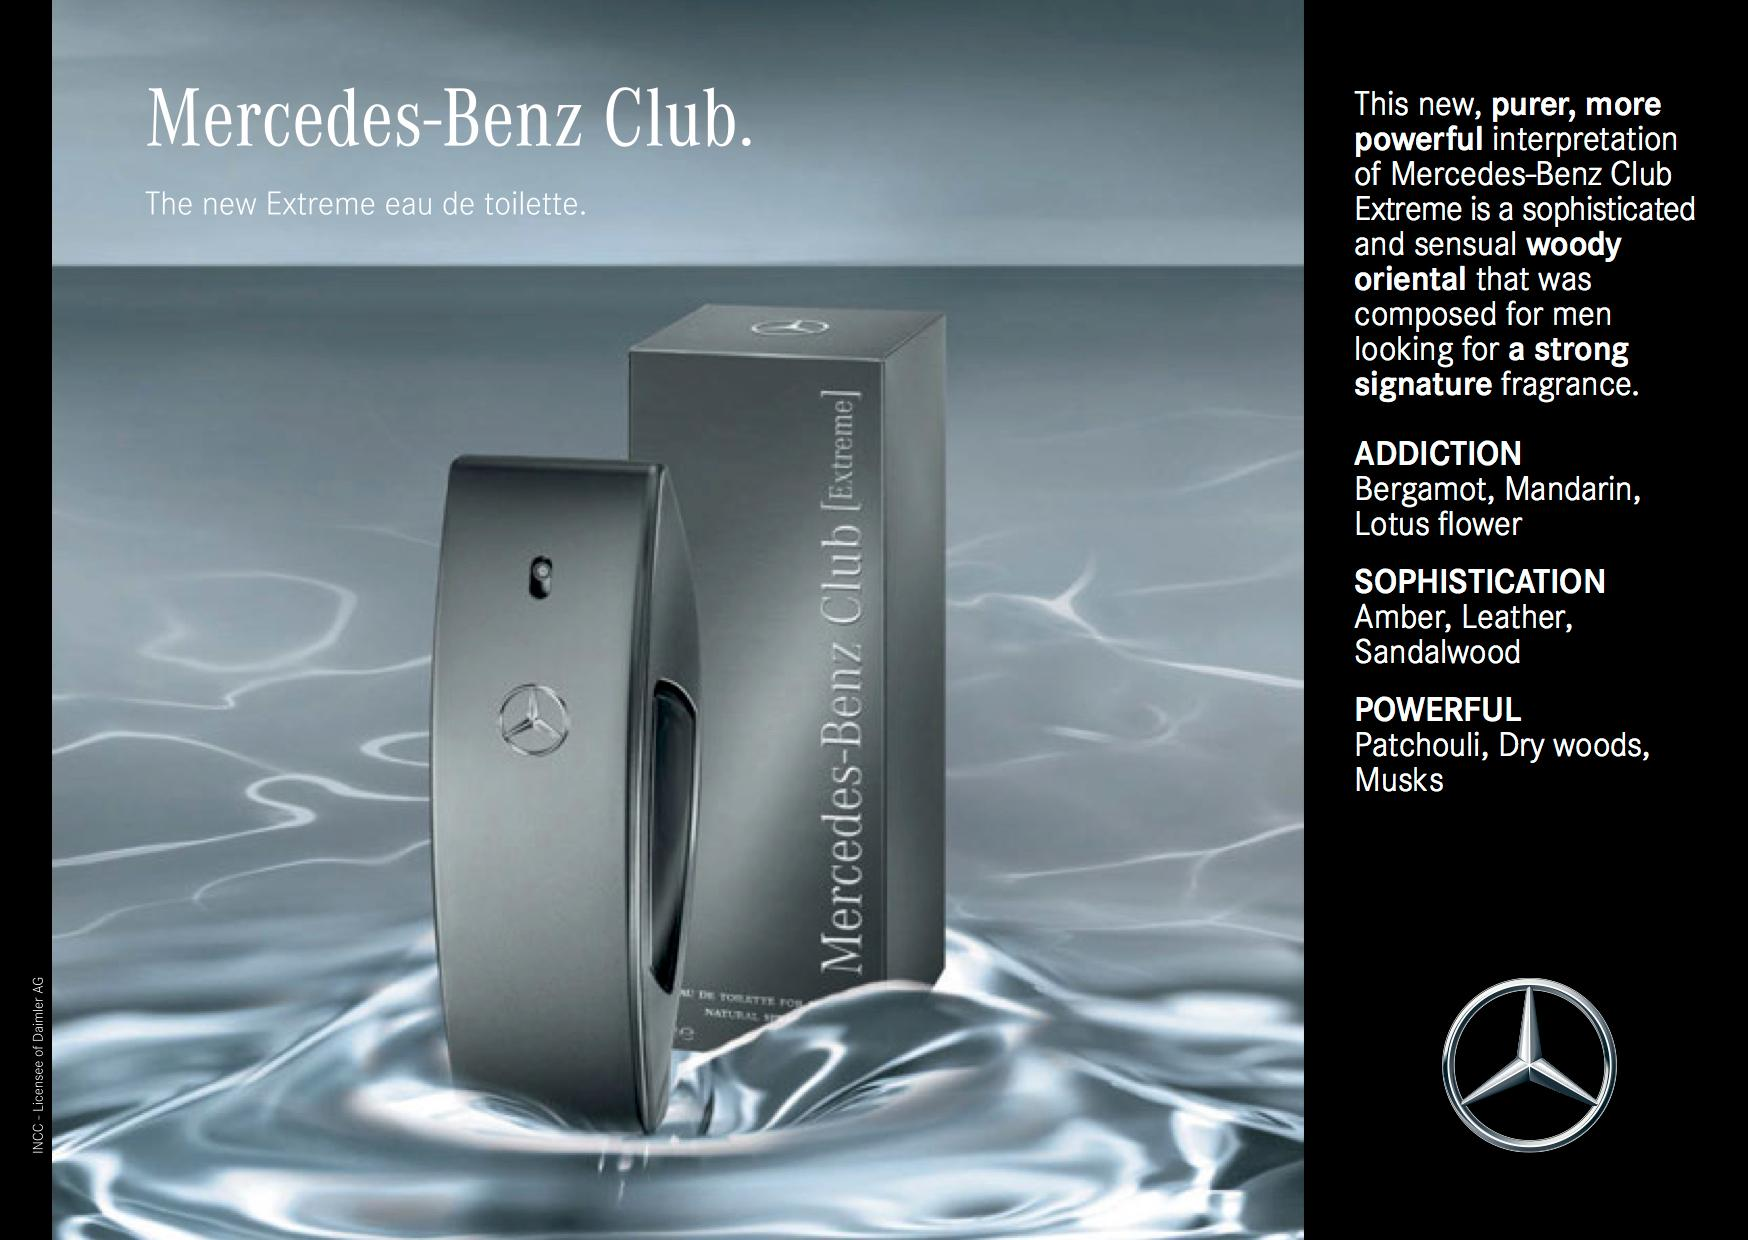 Mercedes benz club for men eau de toilette for Mercedes benz club cologne